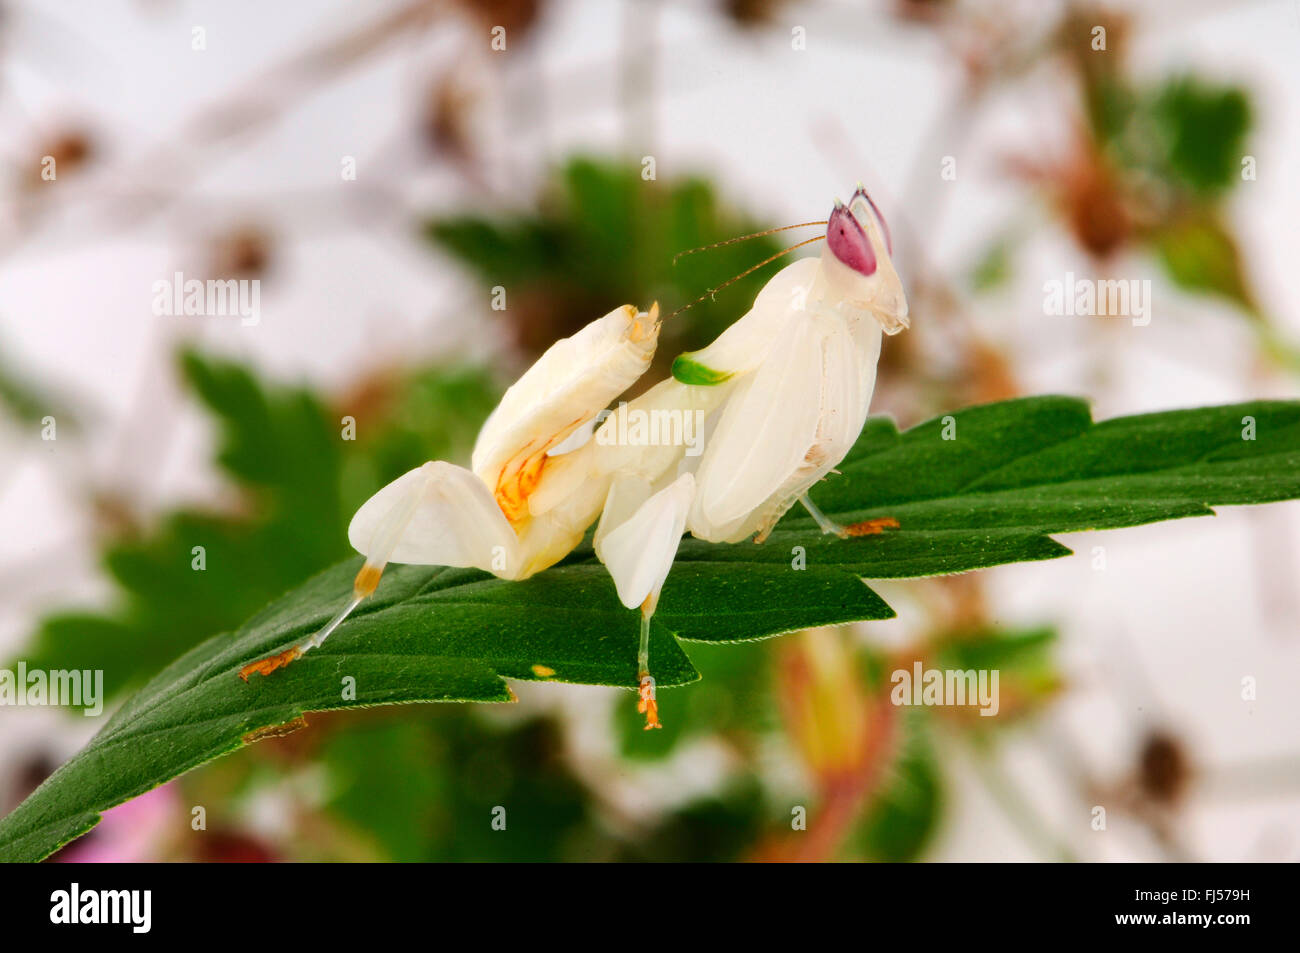 Walking flower mantis orchid mantis pink orchid mantis stock photo walking flower mantis orchid mantis pink orchid mantis hymenopus coronatus white mantis on a cannabis leaf dhlflorist Image collections